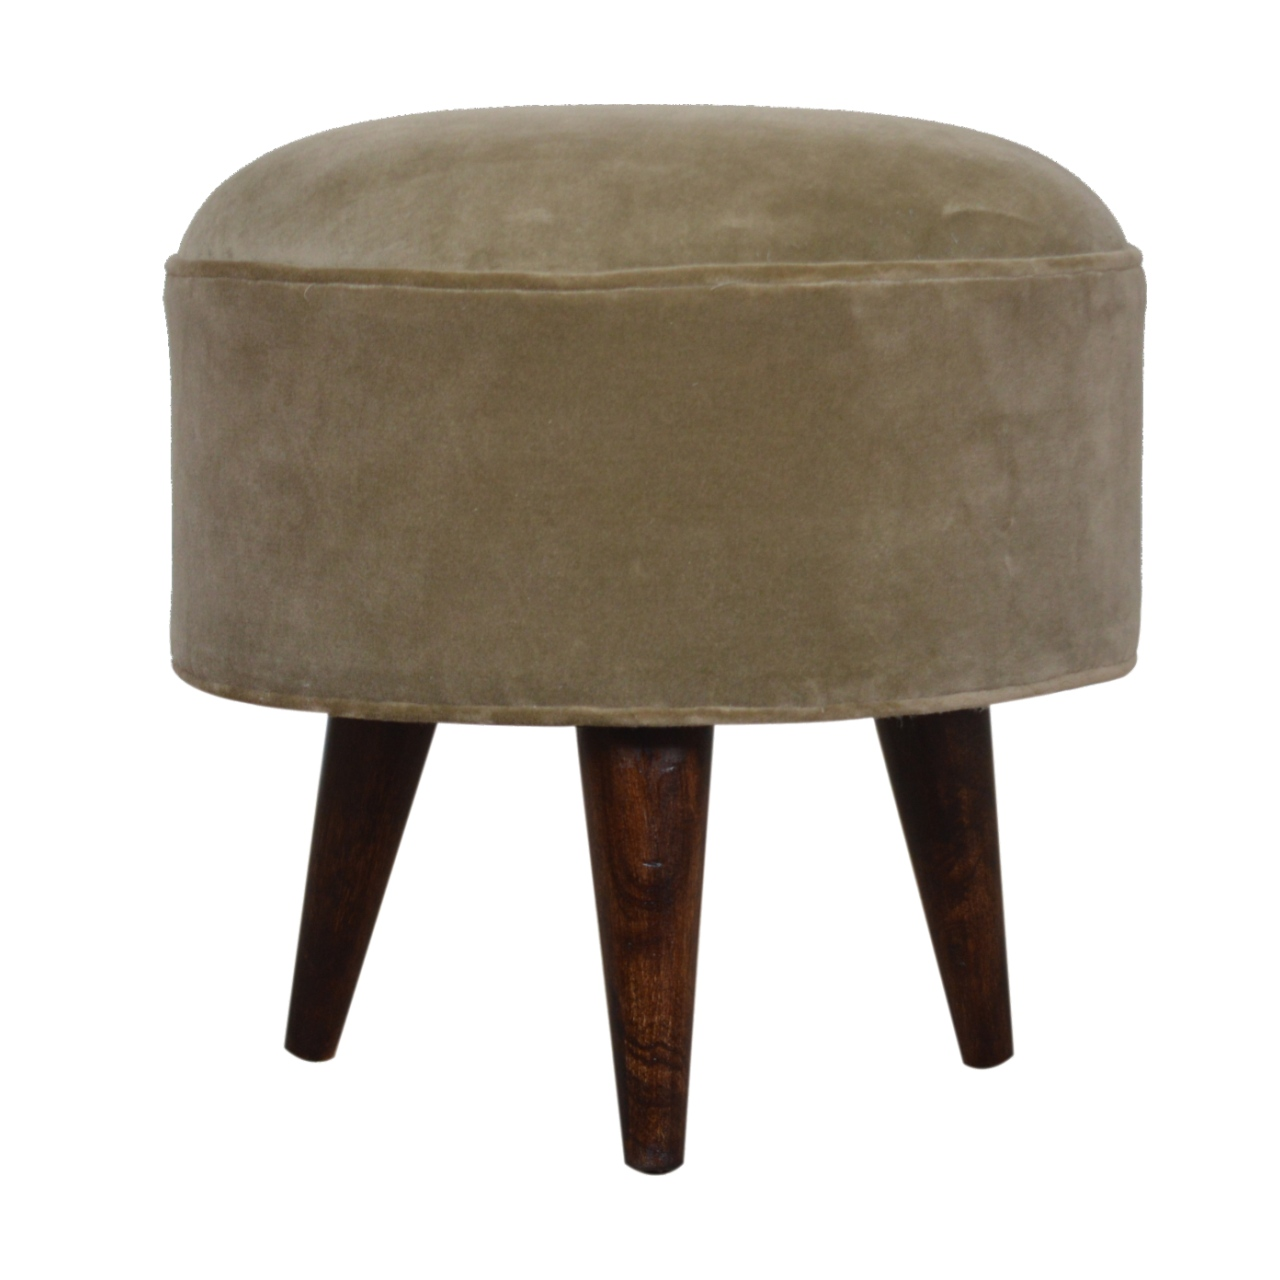 The Home Furnishings Company Mocha Velvet Foot Rest Stool